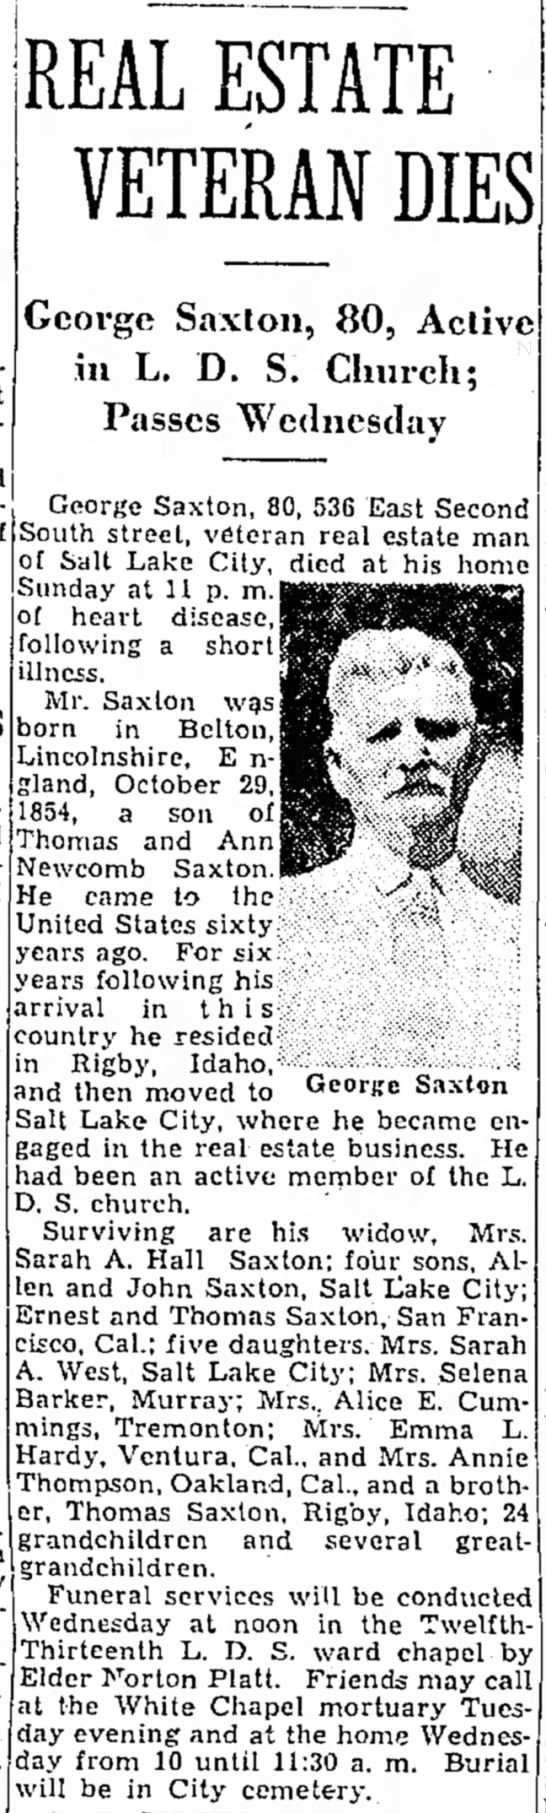 Obituary of George Saxton 1854-1935